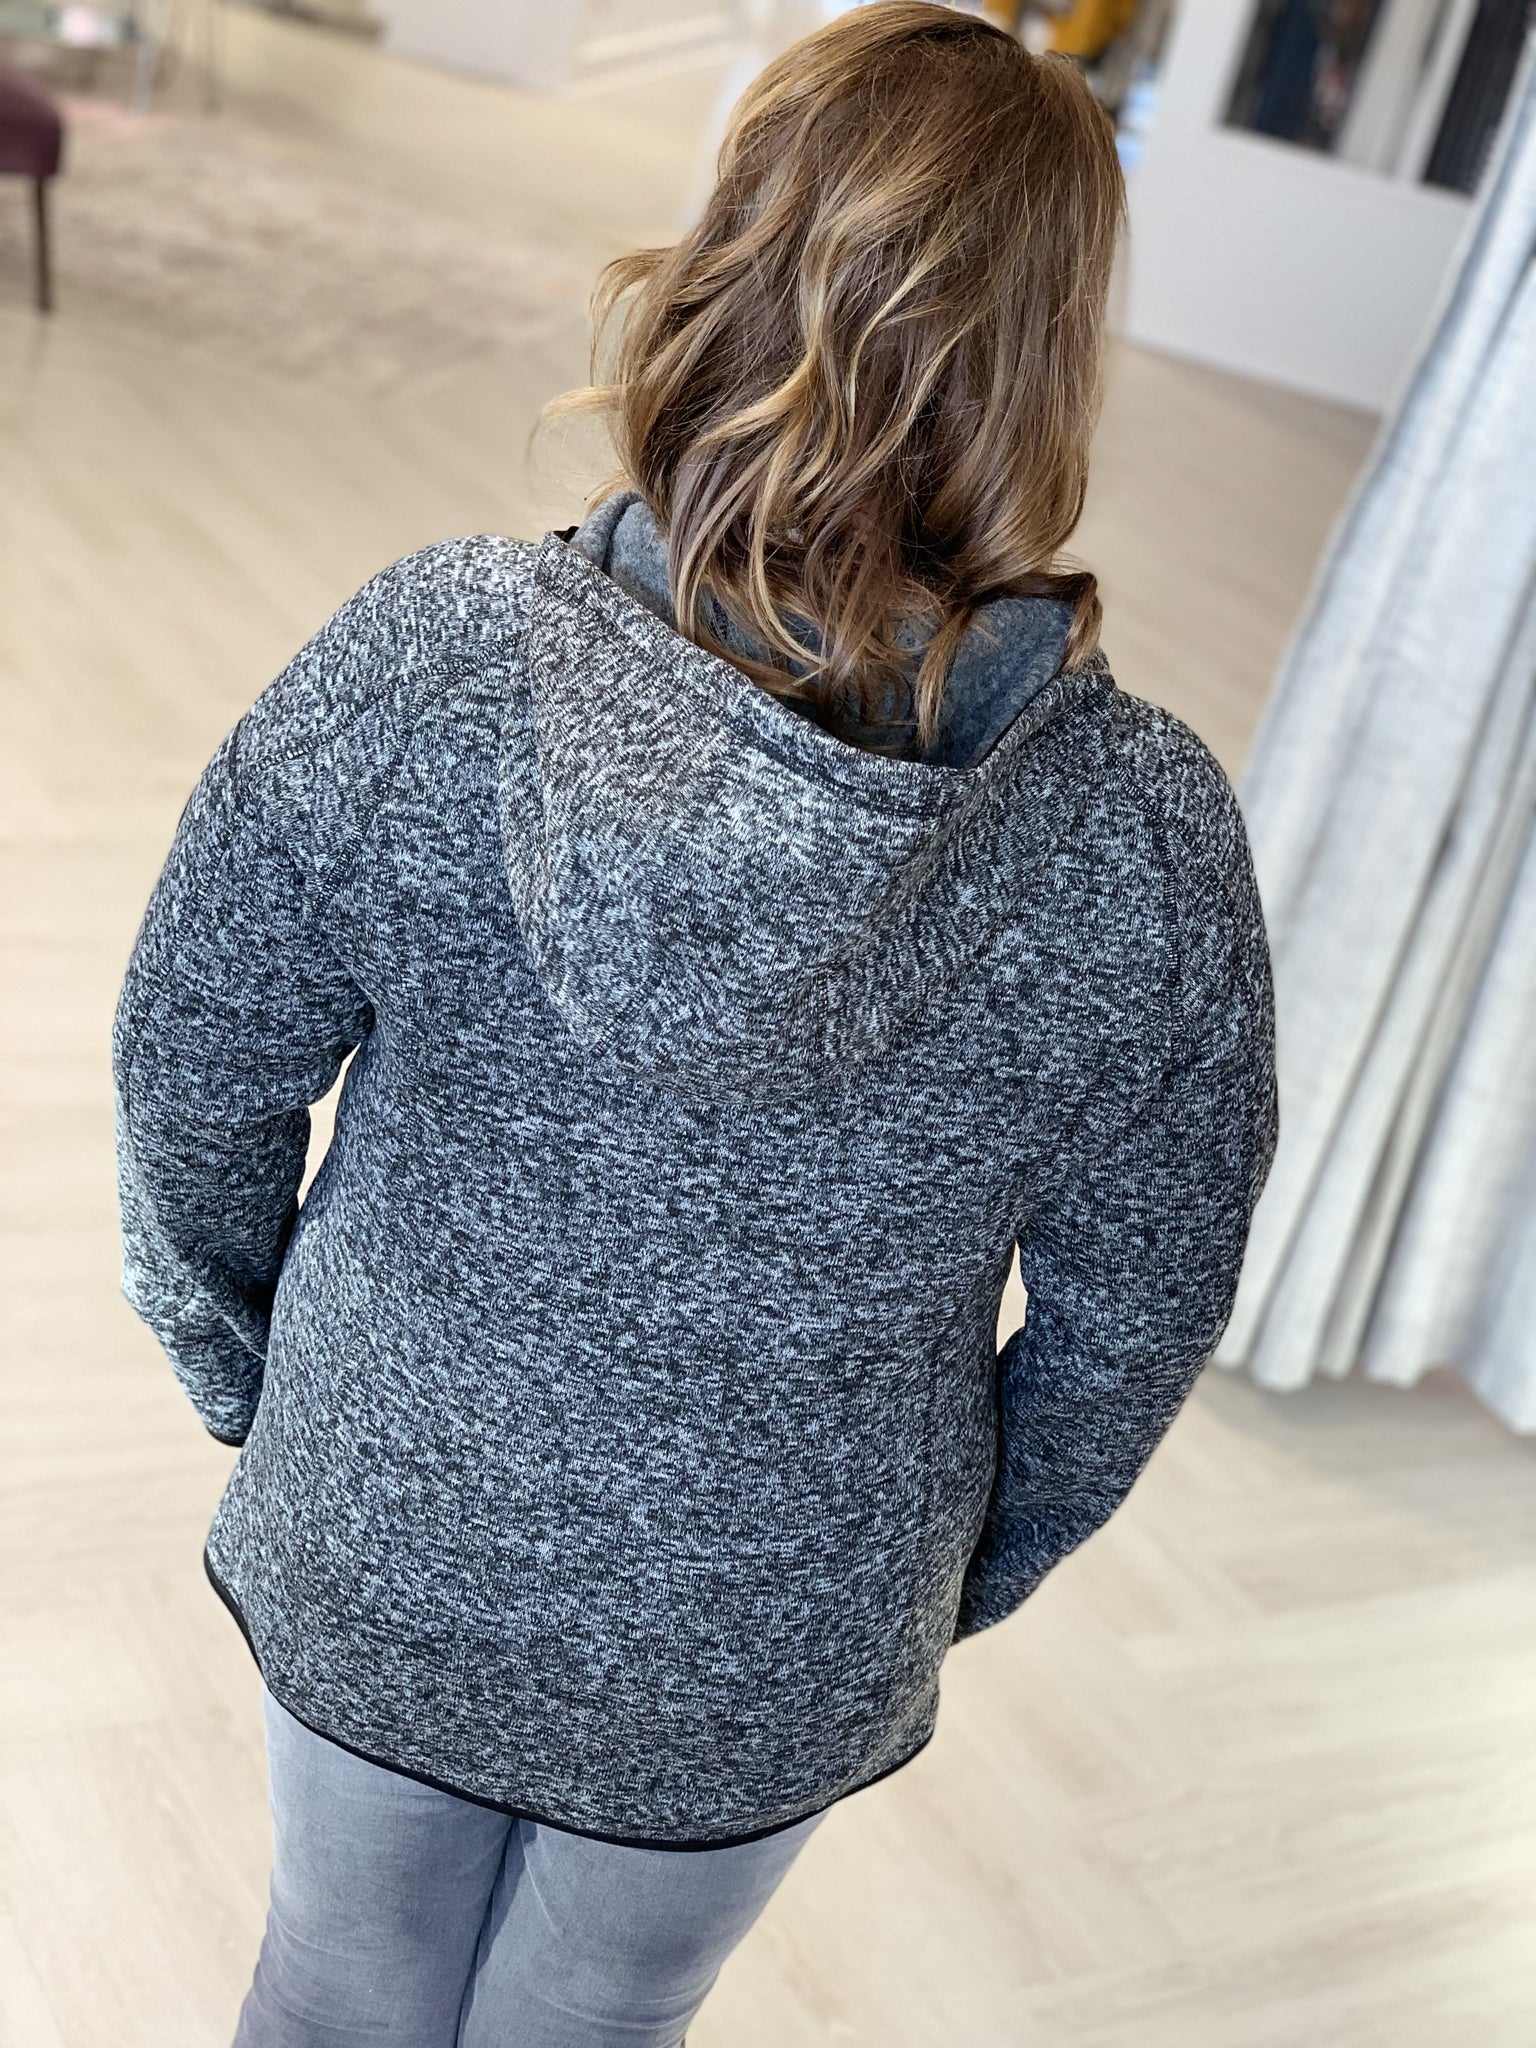 FLEECE-LINED HOODED SWEATSHIRT